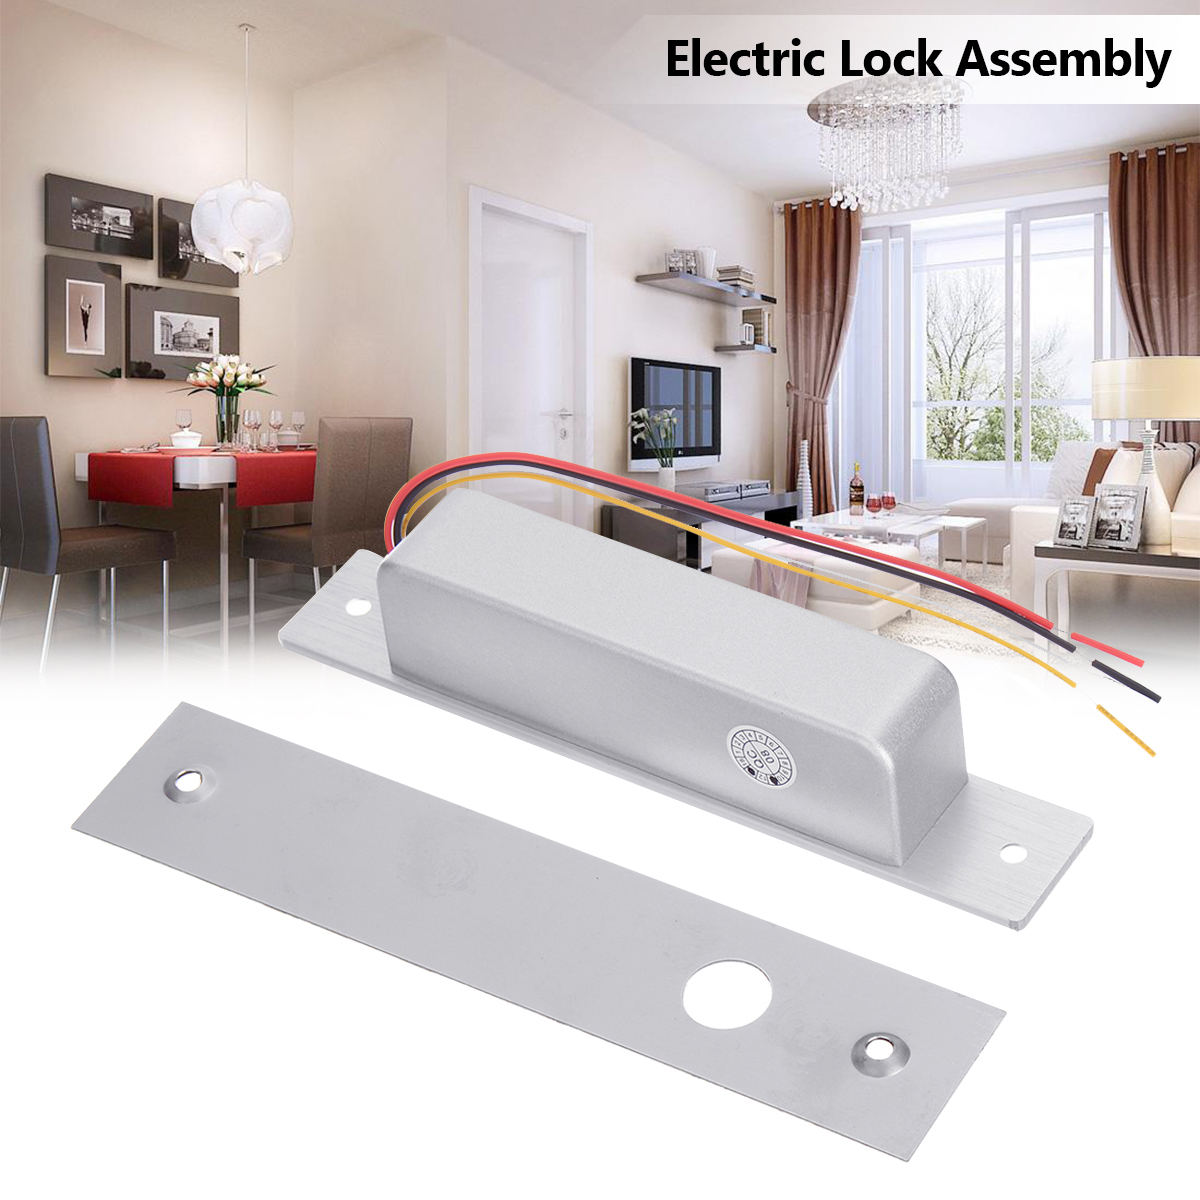 Silver Electric Strike Door Lock DC 12V for Access Control System Electromagnet Fail-Safe Electric Bolt Lock silver electric strike door lock dc 12v for access control system electromagnet fail safe electric bolt lock